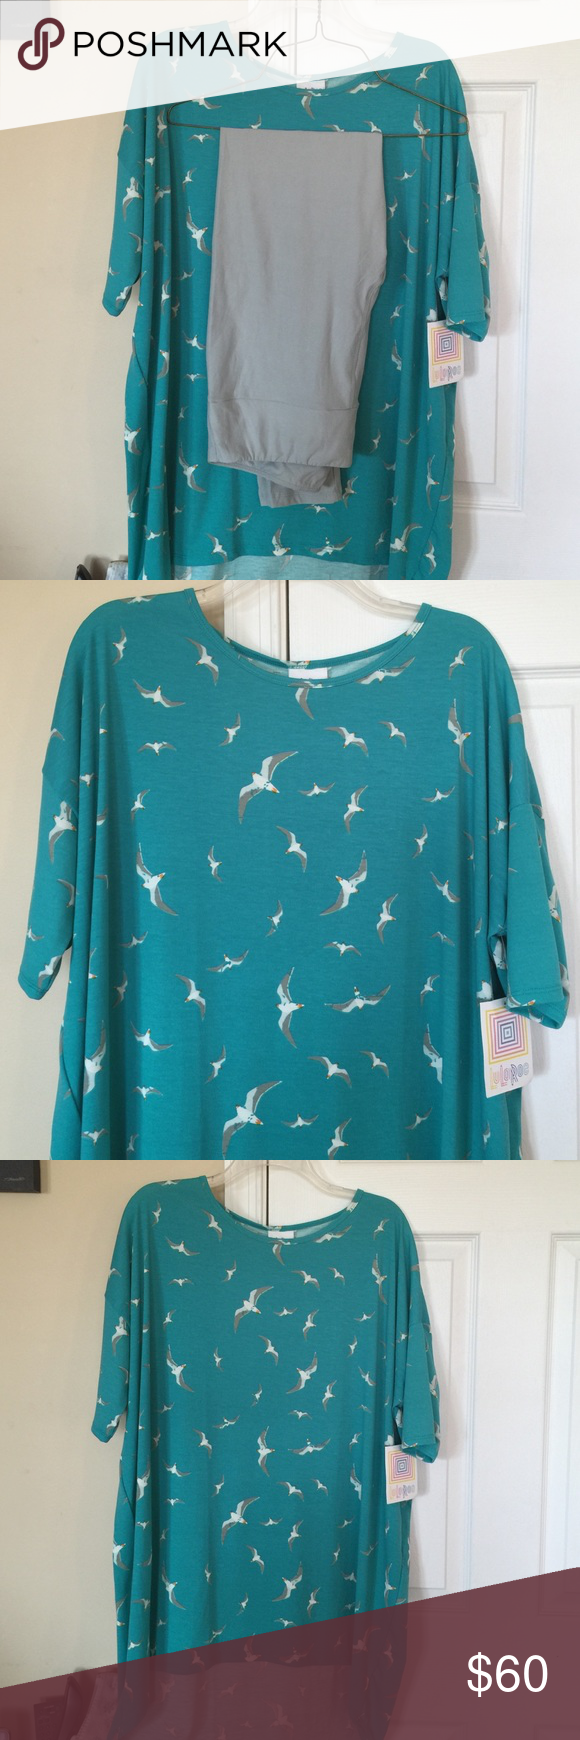 Lularoe Seagull Irma and TC grey leggings Selling this beautiful collection as a set! Irma shirt size lg(guess I need to buy xl) and TC grey leggings! Cute outfit! Just too snug on me and I won't wear it if it's too snug! 😉🤐leggings are new in package too! Took out to try on and for picture purposes! LuLaRoe Pants Leggings